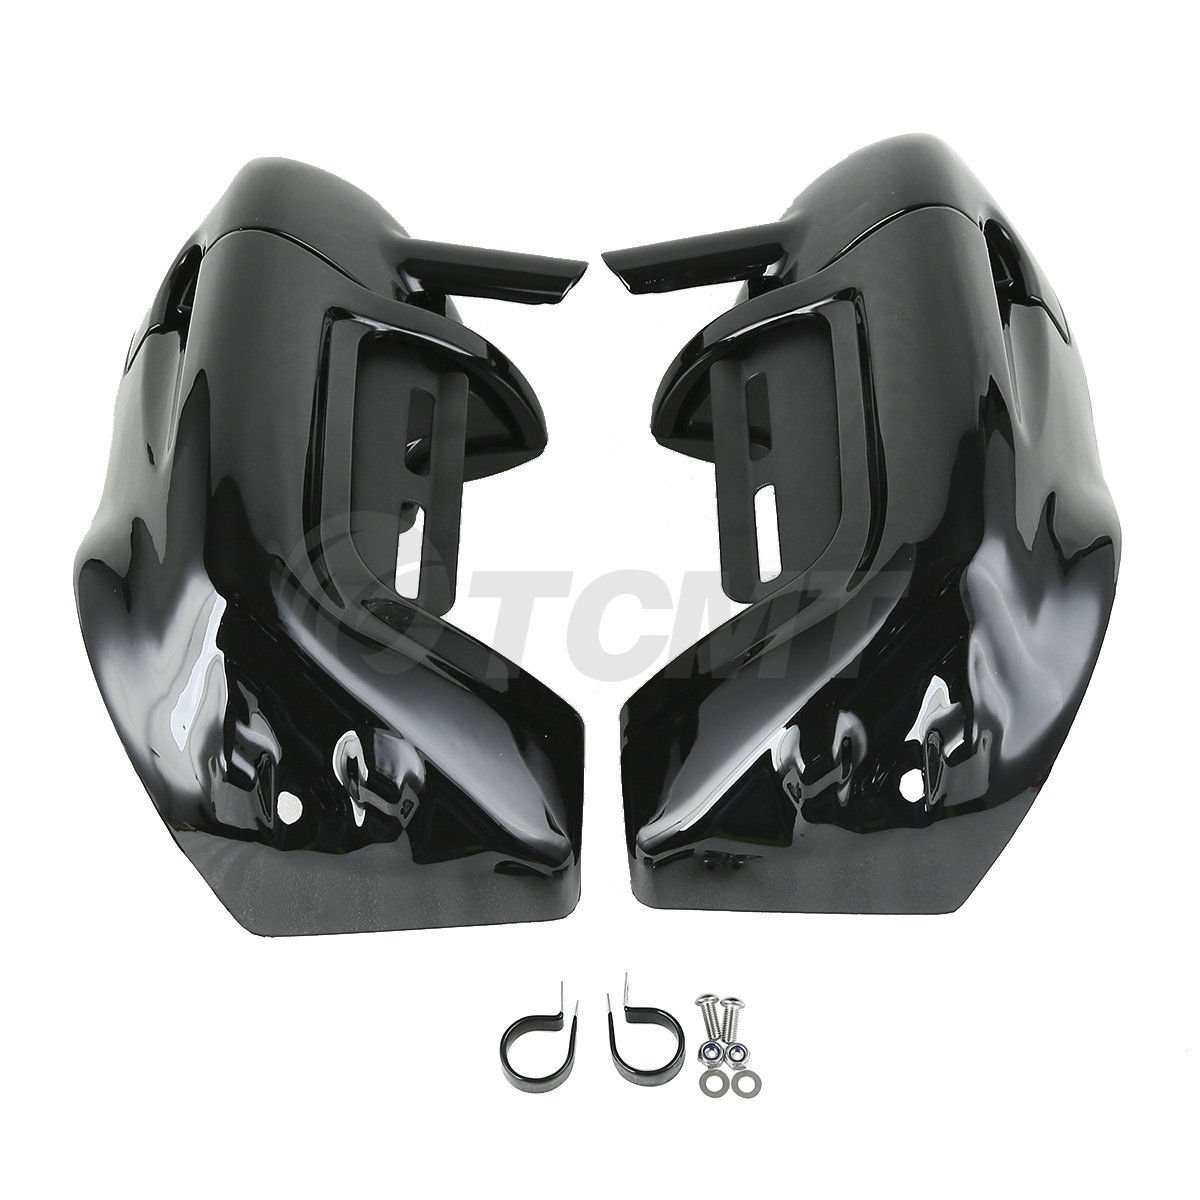 TCMT Black Glove Box Lower Vented Leg Fairings For Harley Touring Ultra-Classic 1983 1984 1985 1986 1987 1988 1989 1990 1991 1992 1993 1994 1995 1996 1997 1998 1999 2000 2001 2002 2003 2004 2005 2006 2007 2008 2009 2010 2011 2012